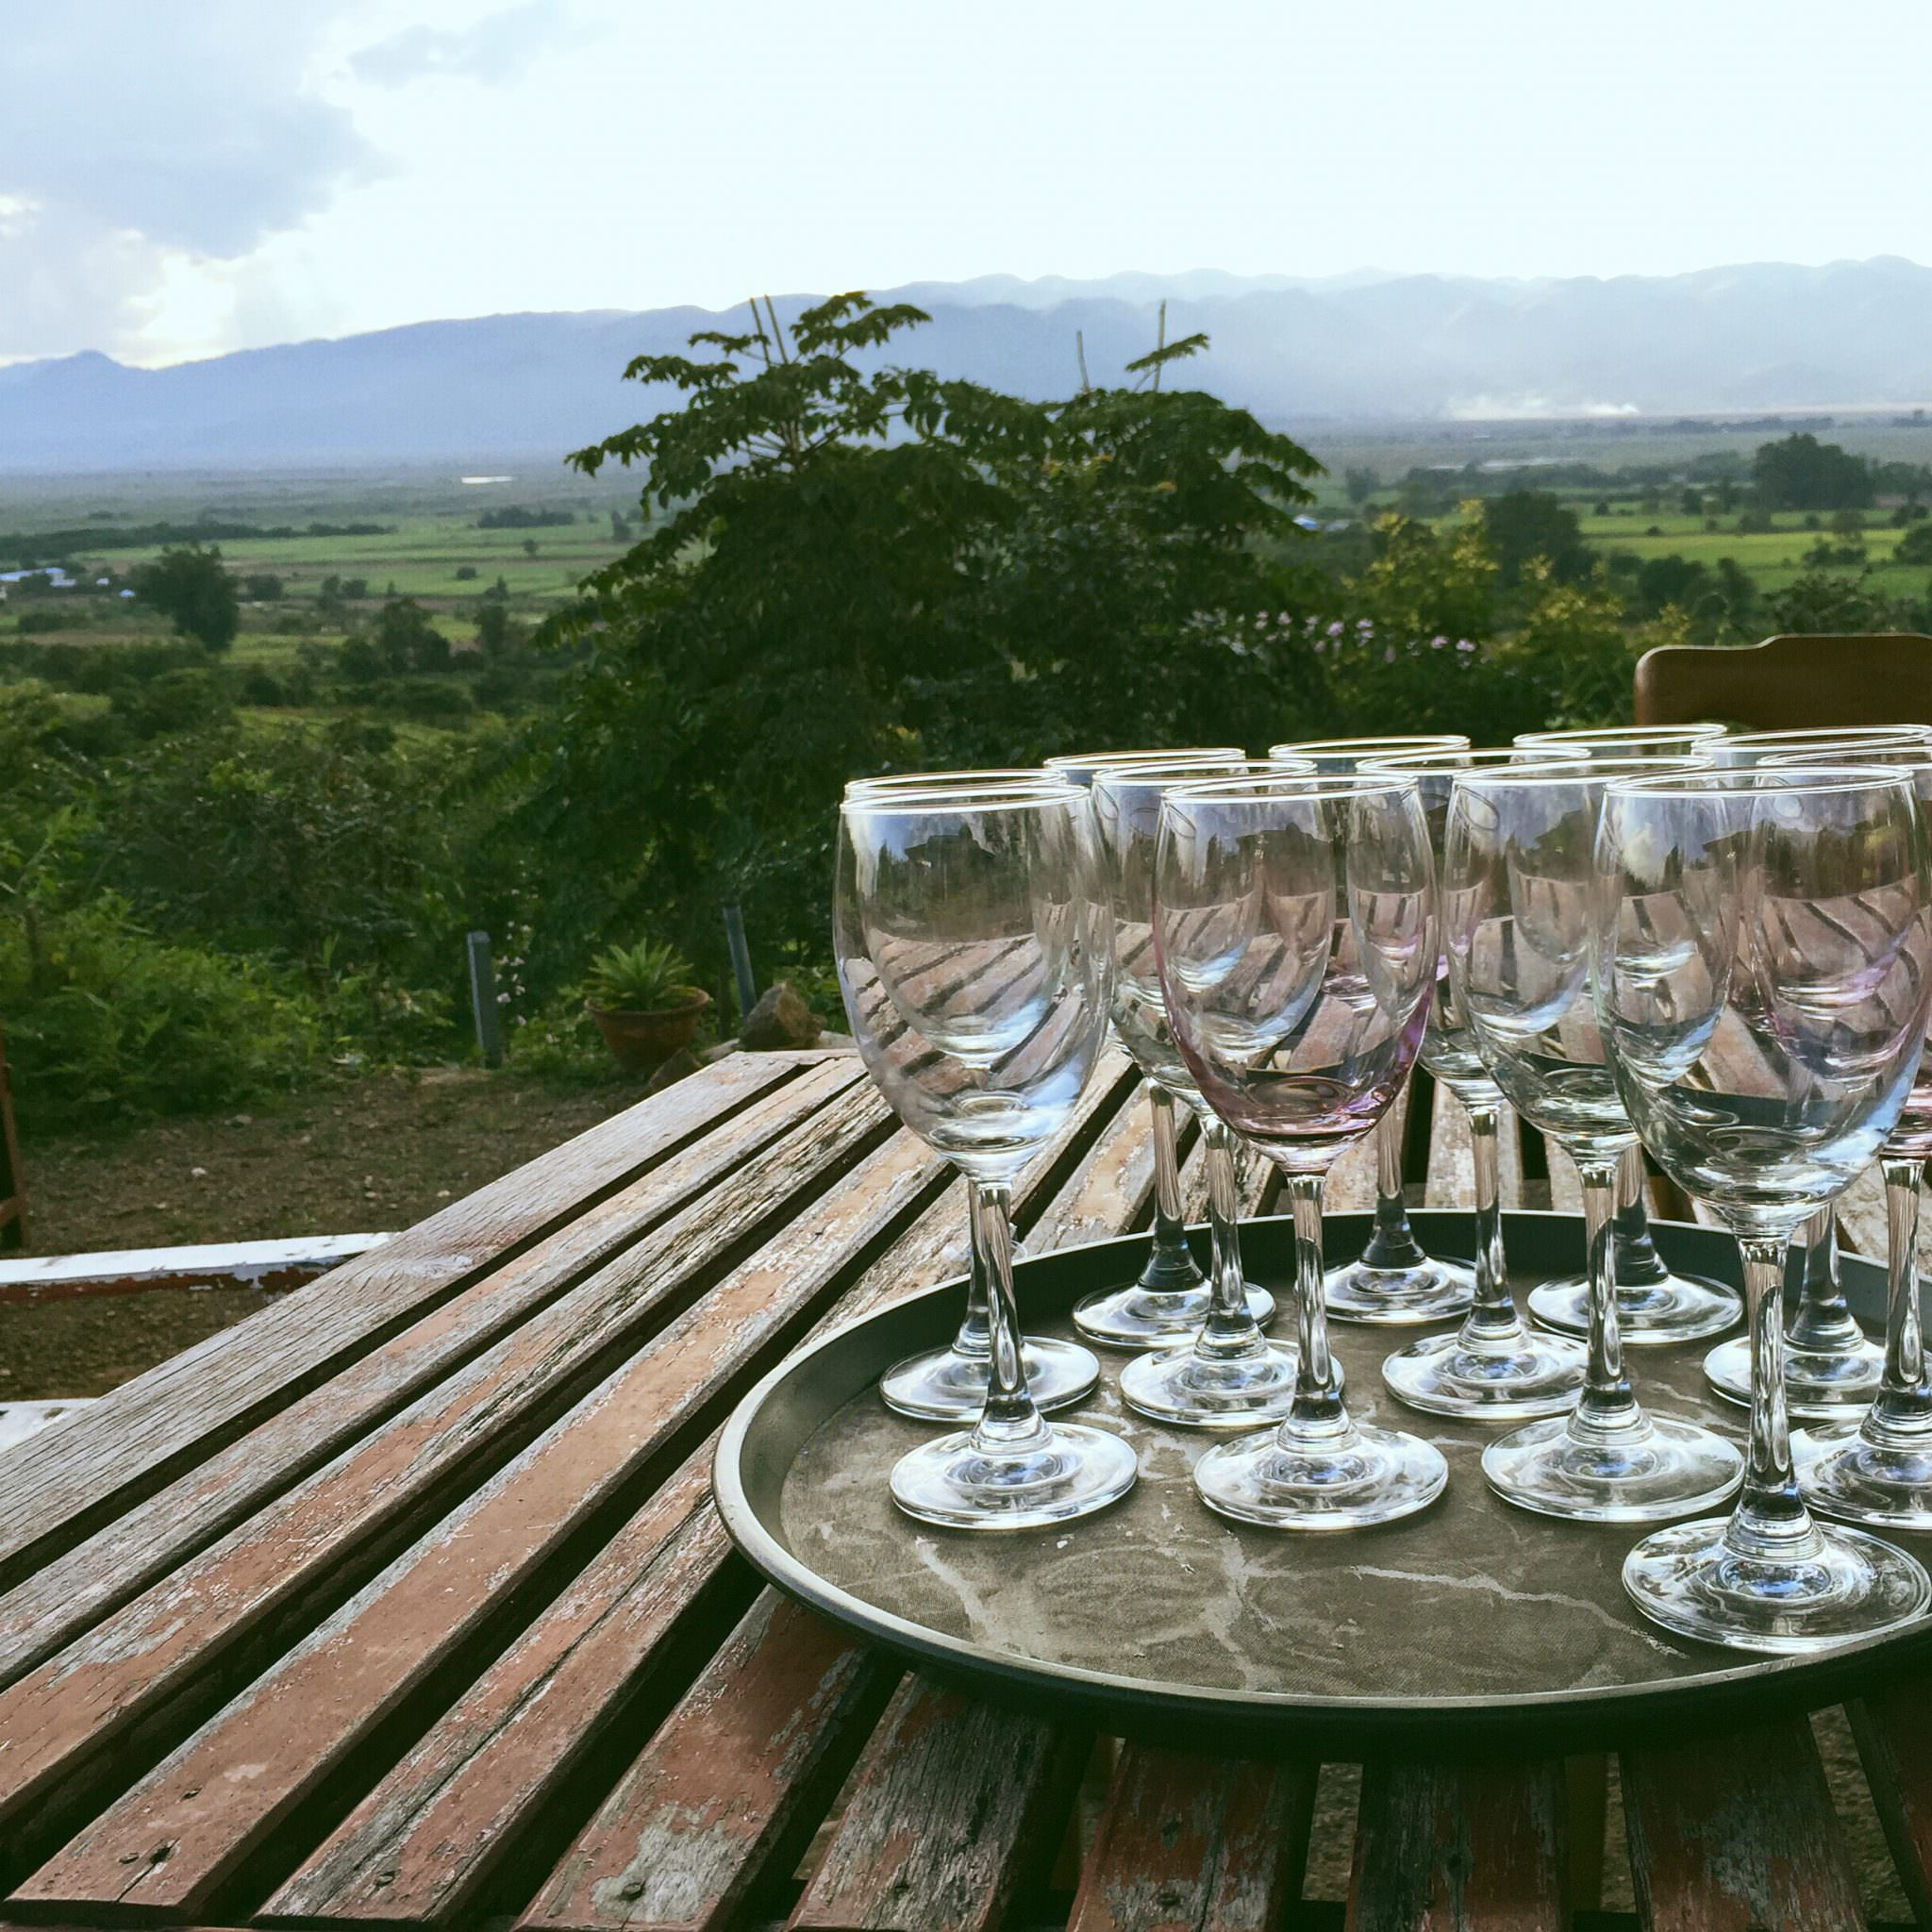 We were treated to a tasting menu that left tables full of empty glasses and sent happy tourists walking carefully up the hill to the bus. (c) 2015 Gail Jessen